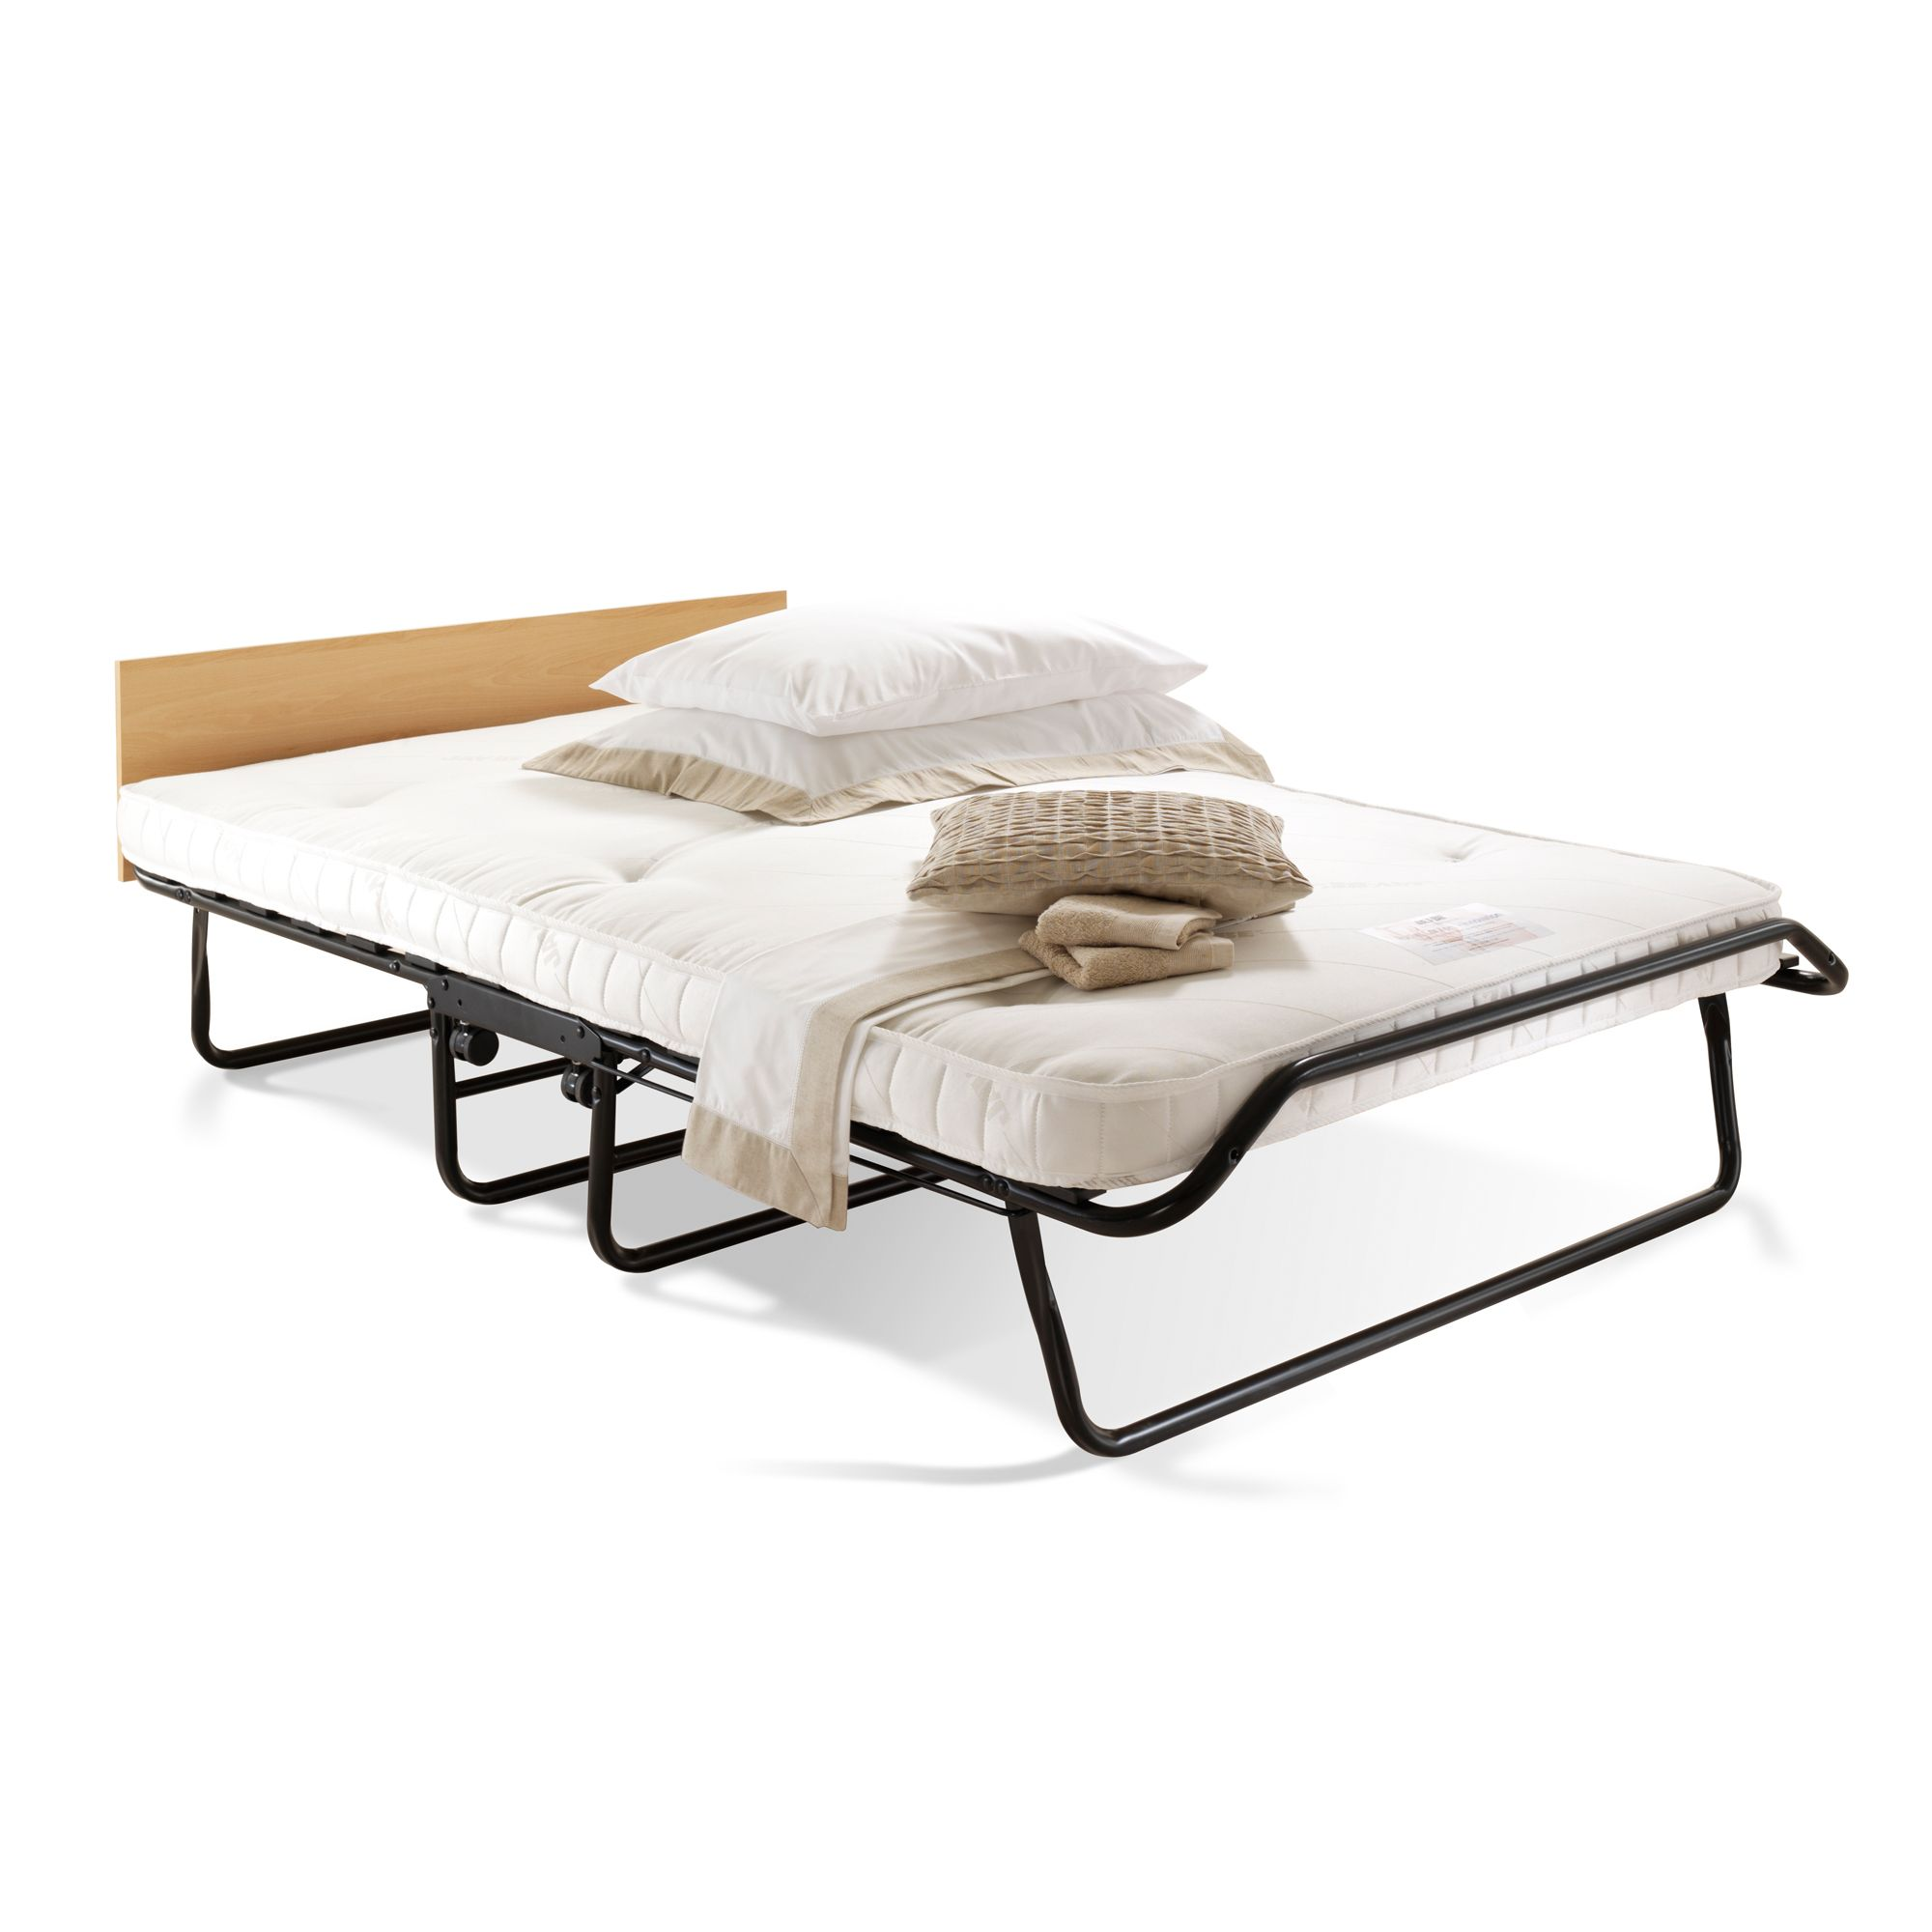 - Jay-Be Royal Double Foldable Guest Bed With Pocket Sprung Mattress  Departments DIY At B&Q